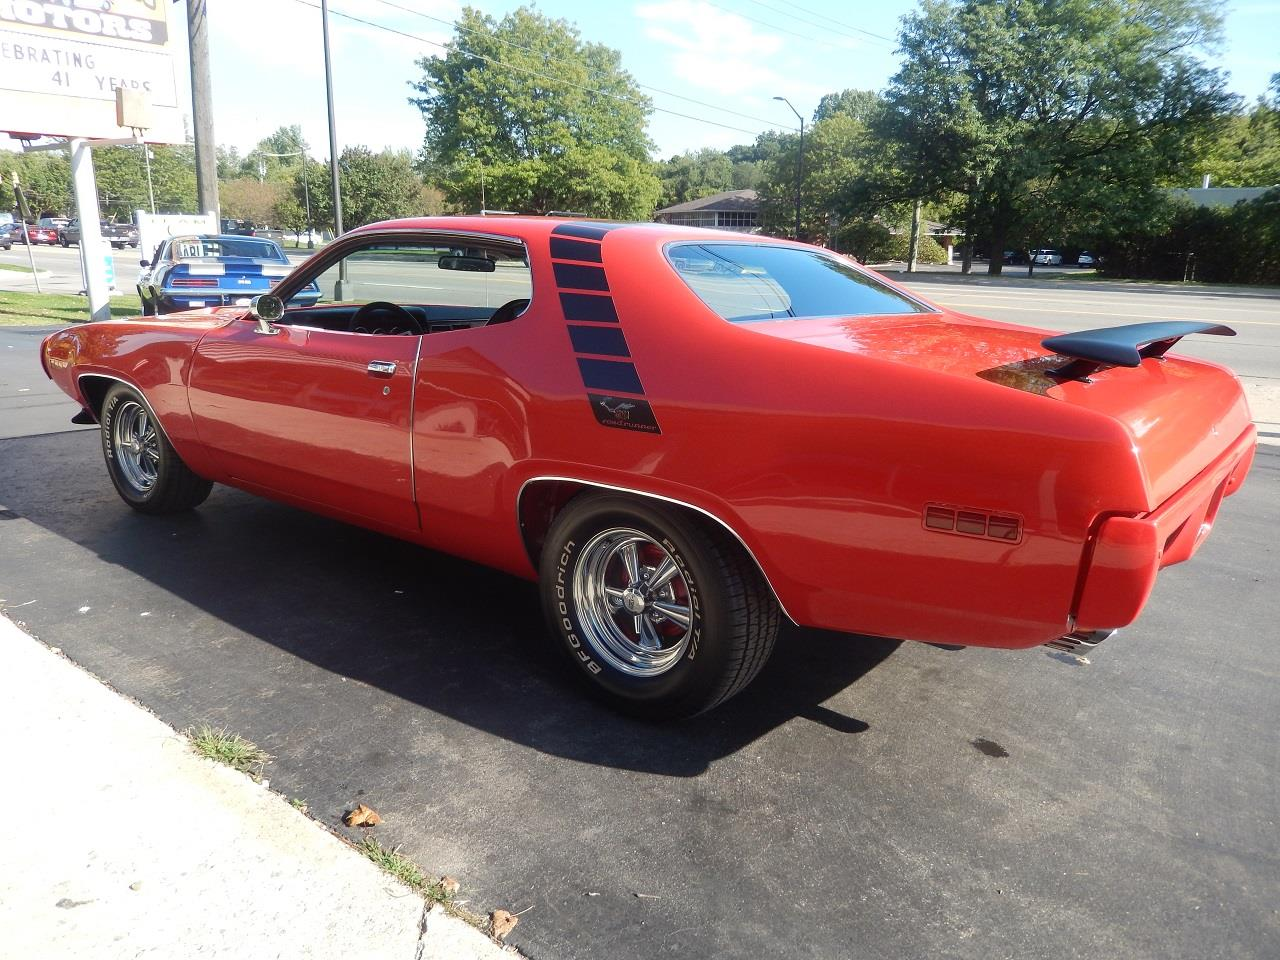 1971 Plymouth Road Runner (CC-1263003) for sale in Clarkston, Michigan